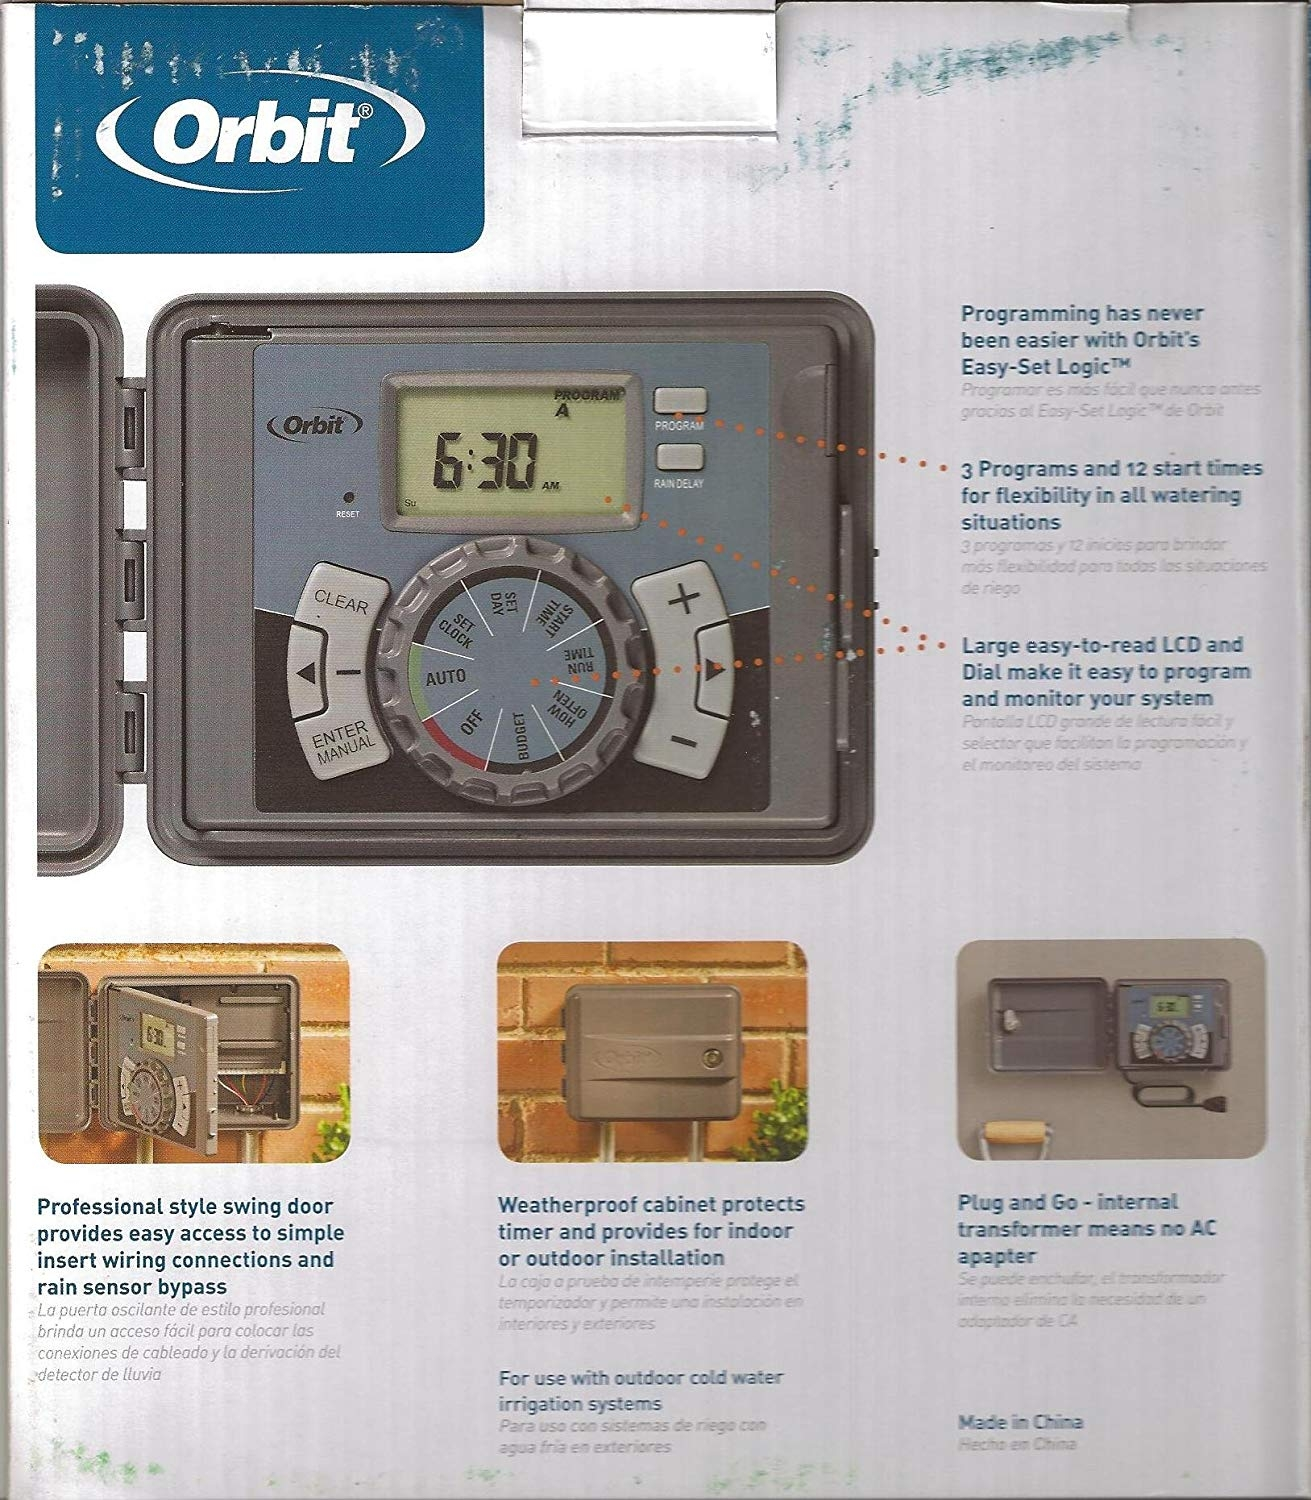 orbit hose faucet timer 91014 user manual